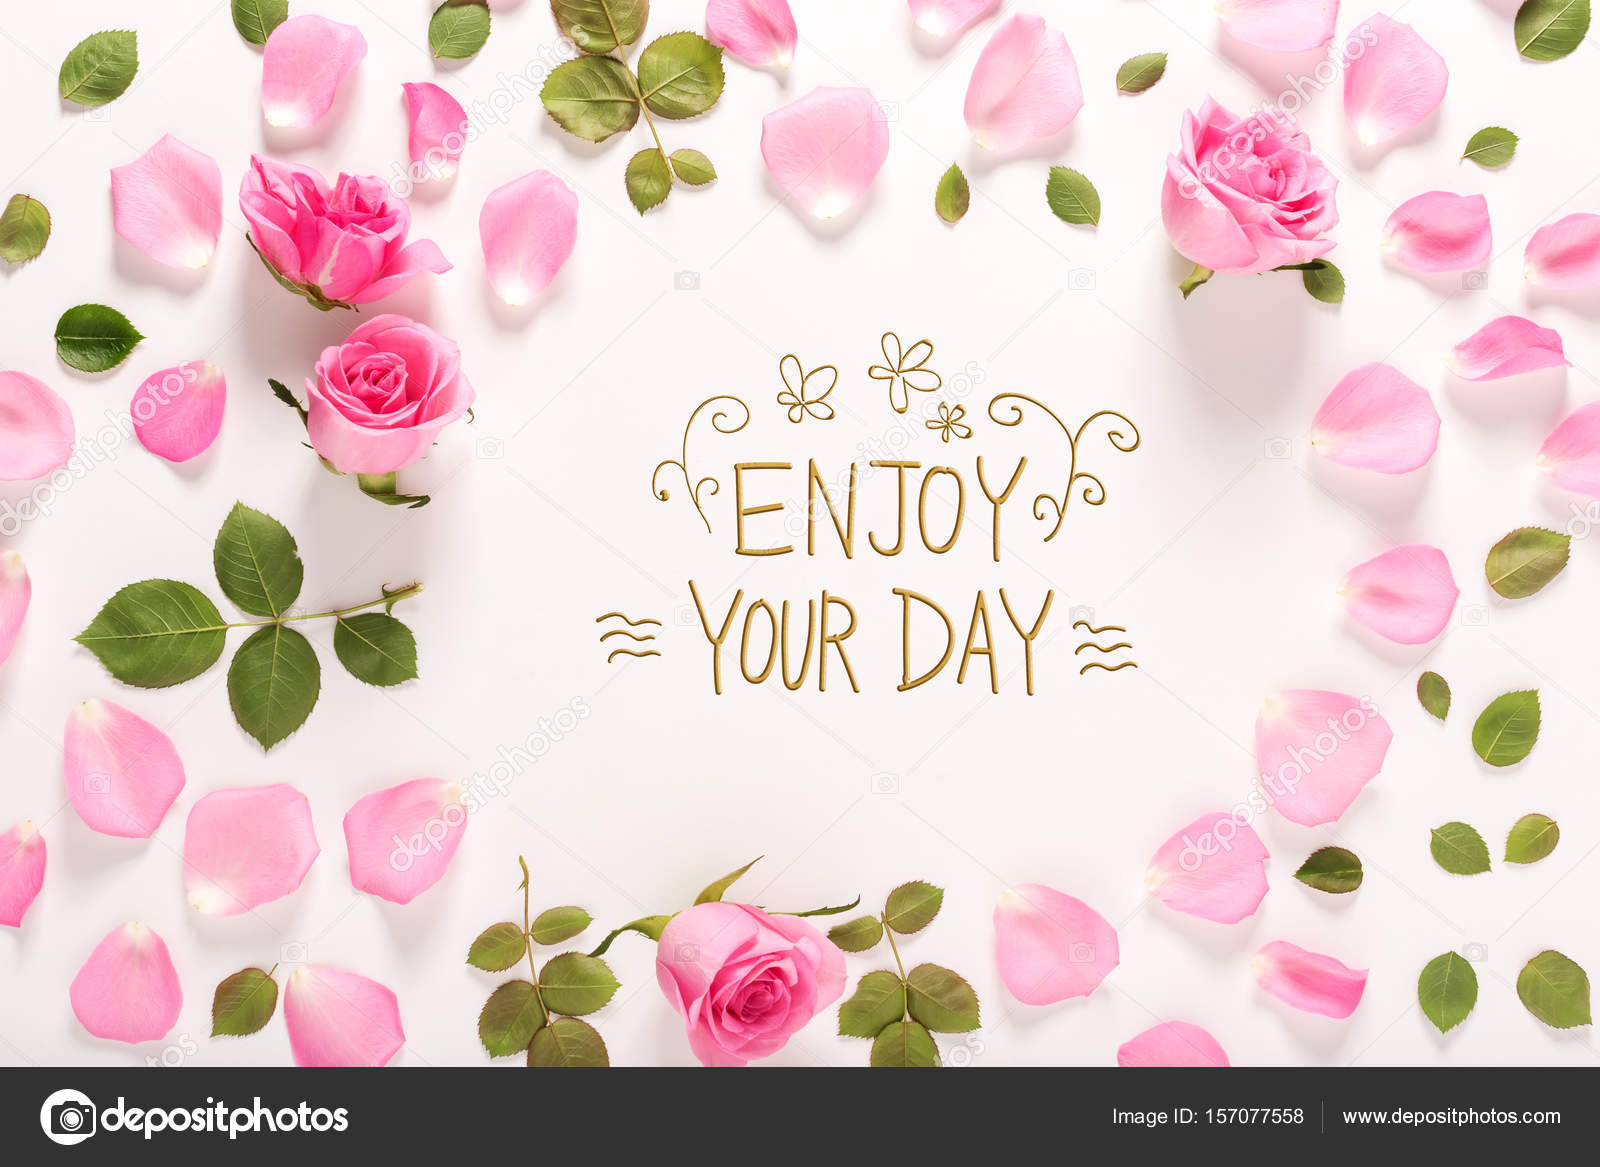 Enjoy Your Day Message With Roses And Leaves U2014 Stock Photo